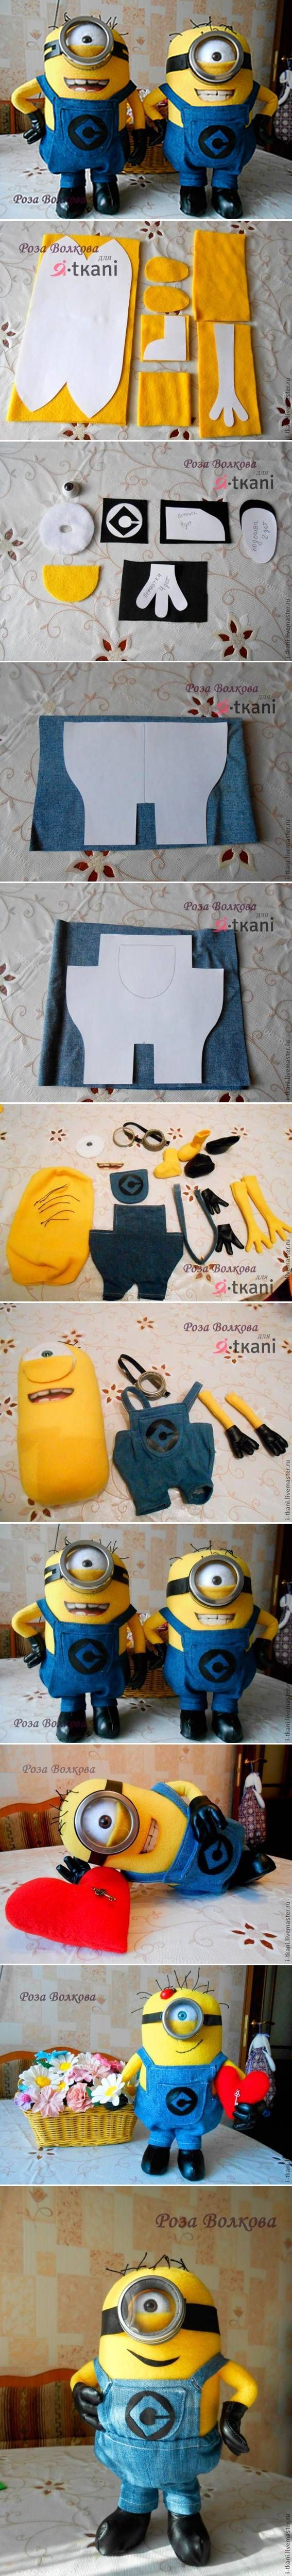 DIY Minion Dolls. I know whose christmas present this will be!